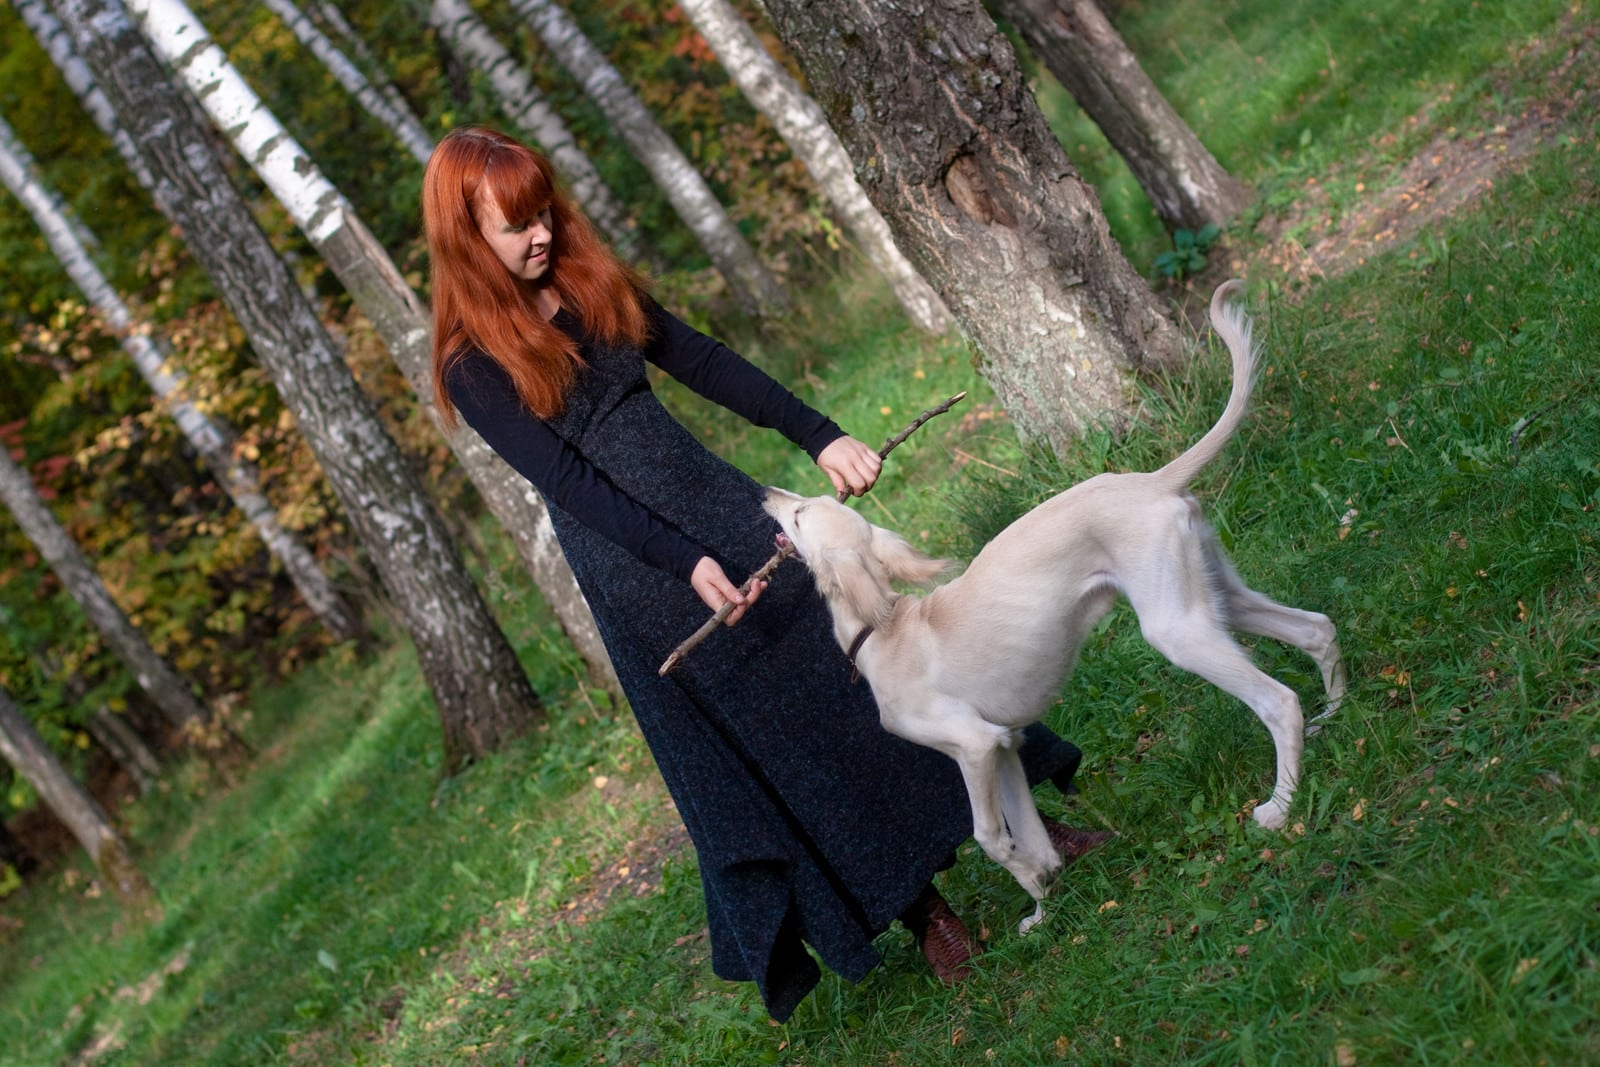 Cream Saluki biting stick held by Woman in black dress and long red hair. In forest with lush grass.